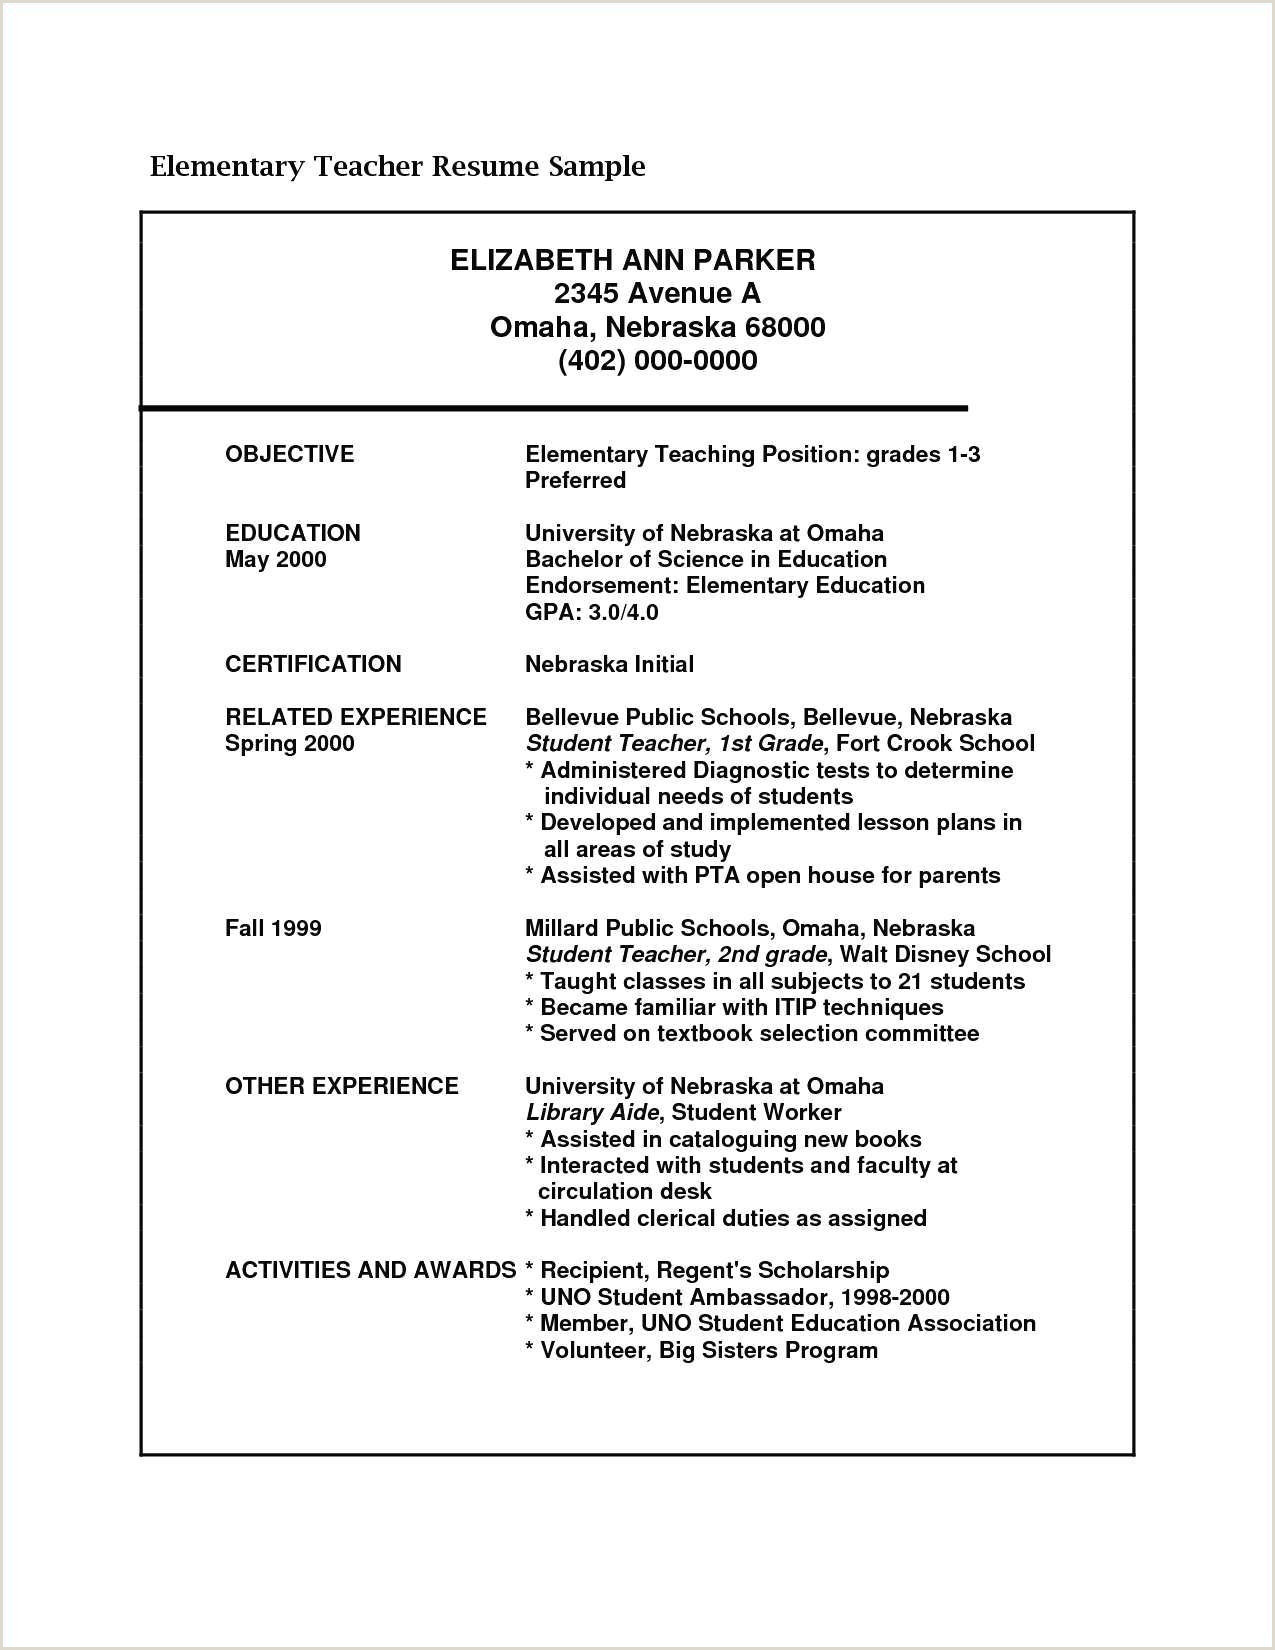 Sample Resume for Elementary Teacher Teaching theme In Literature Powerpoint Superb 0d How Honors